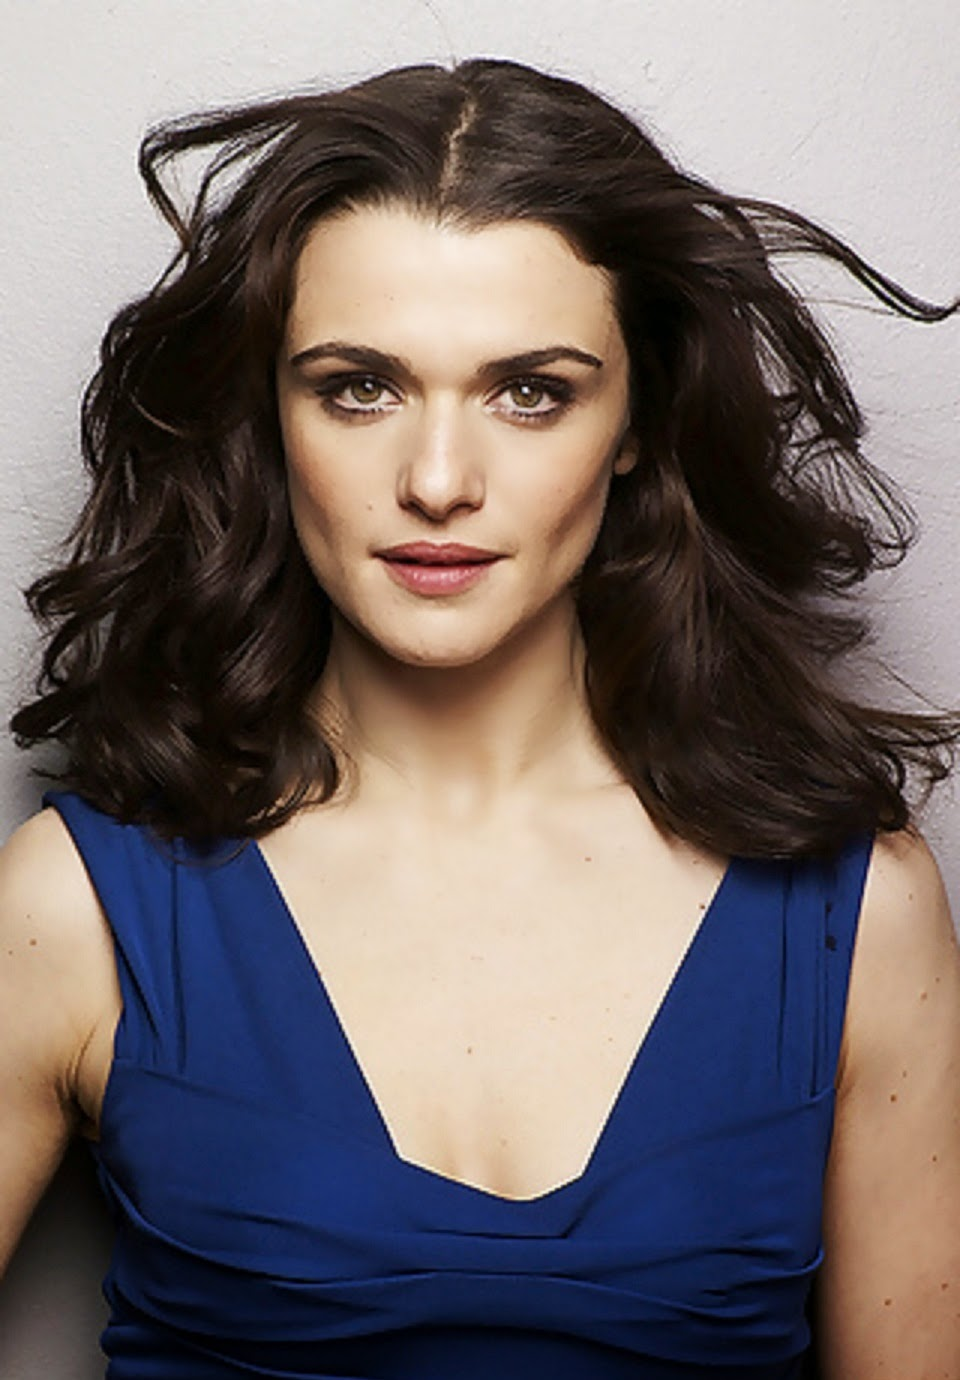 Stylish Wallpaper Girl Rachel Weisz Hd Wallpaper All 4u Wallpaper